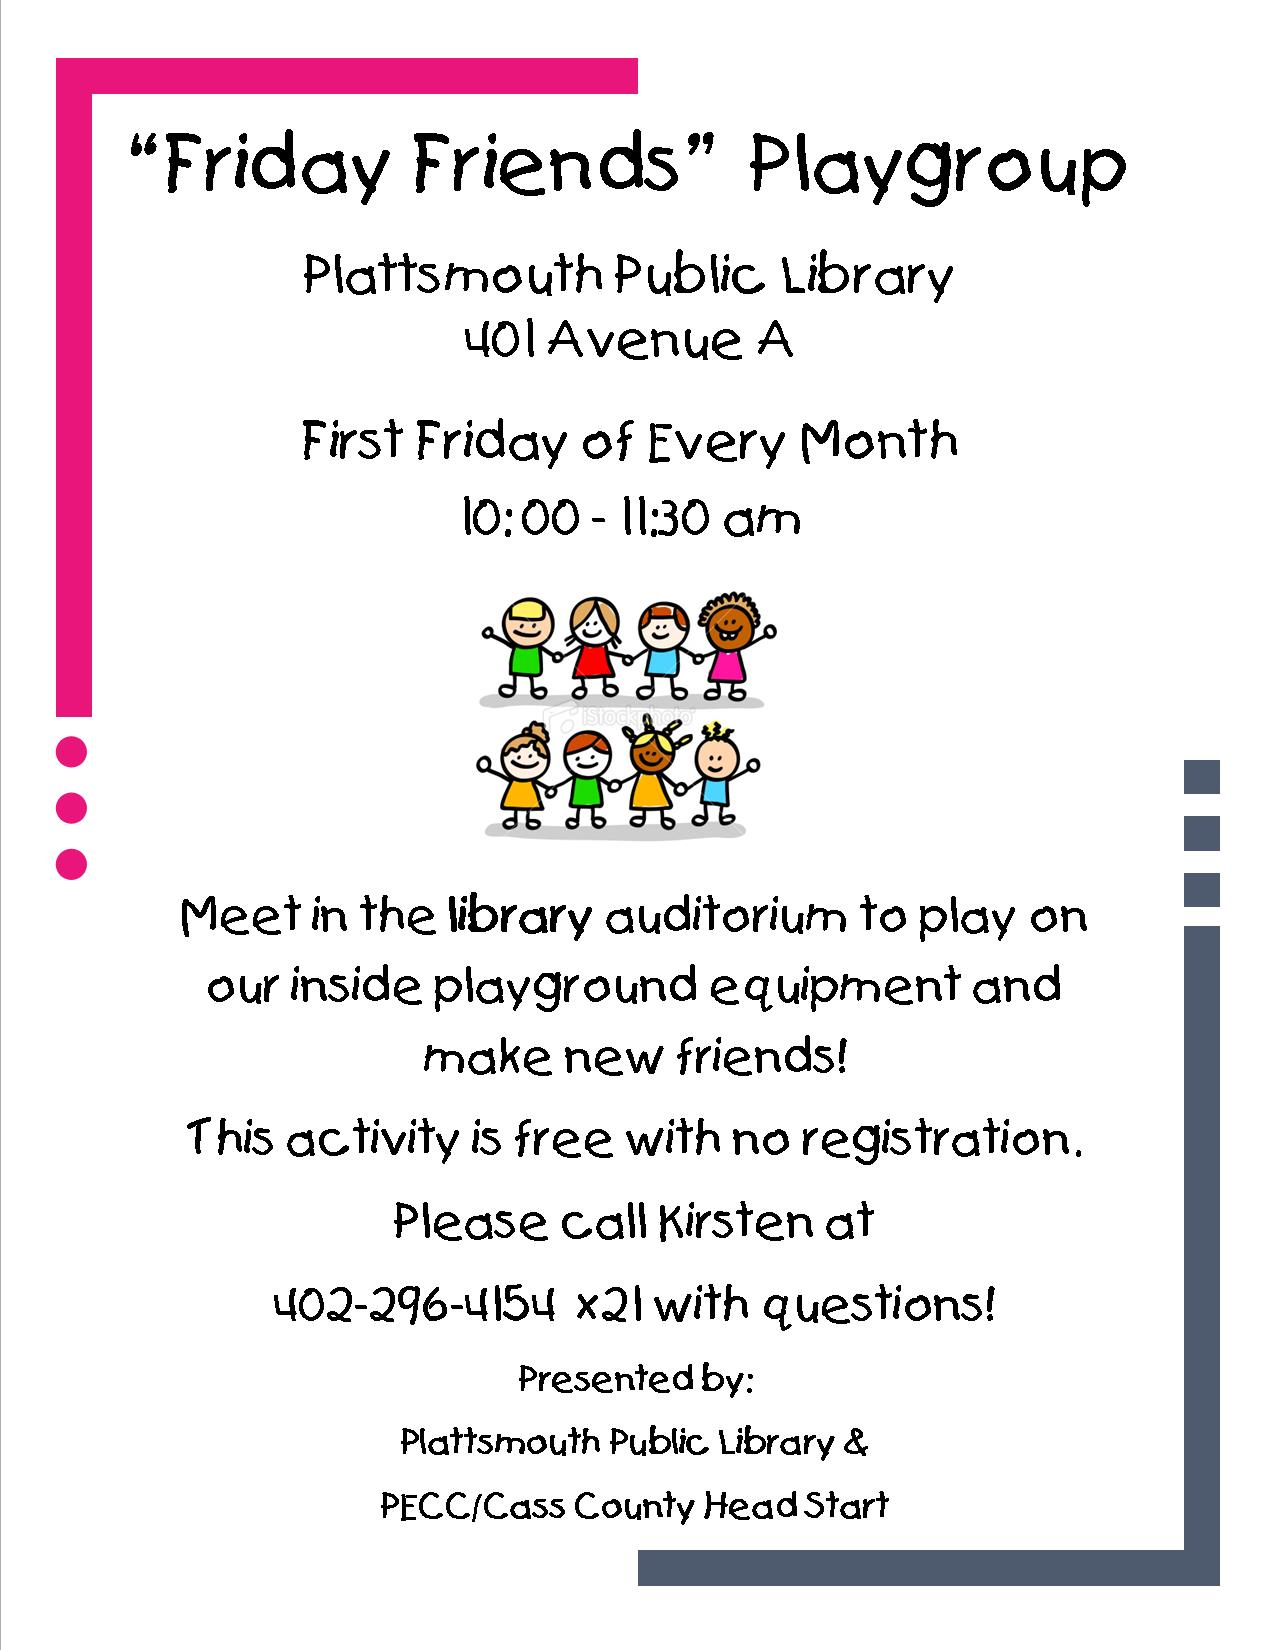 Friday Friends Playgroup Poster updated